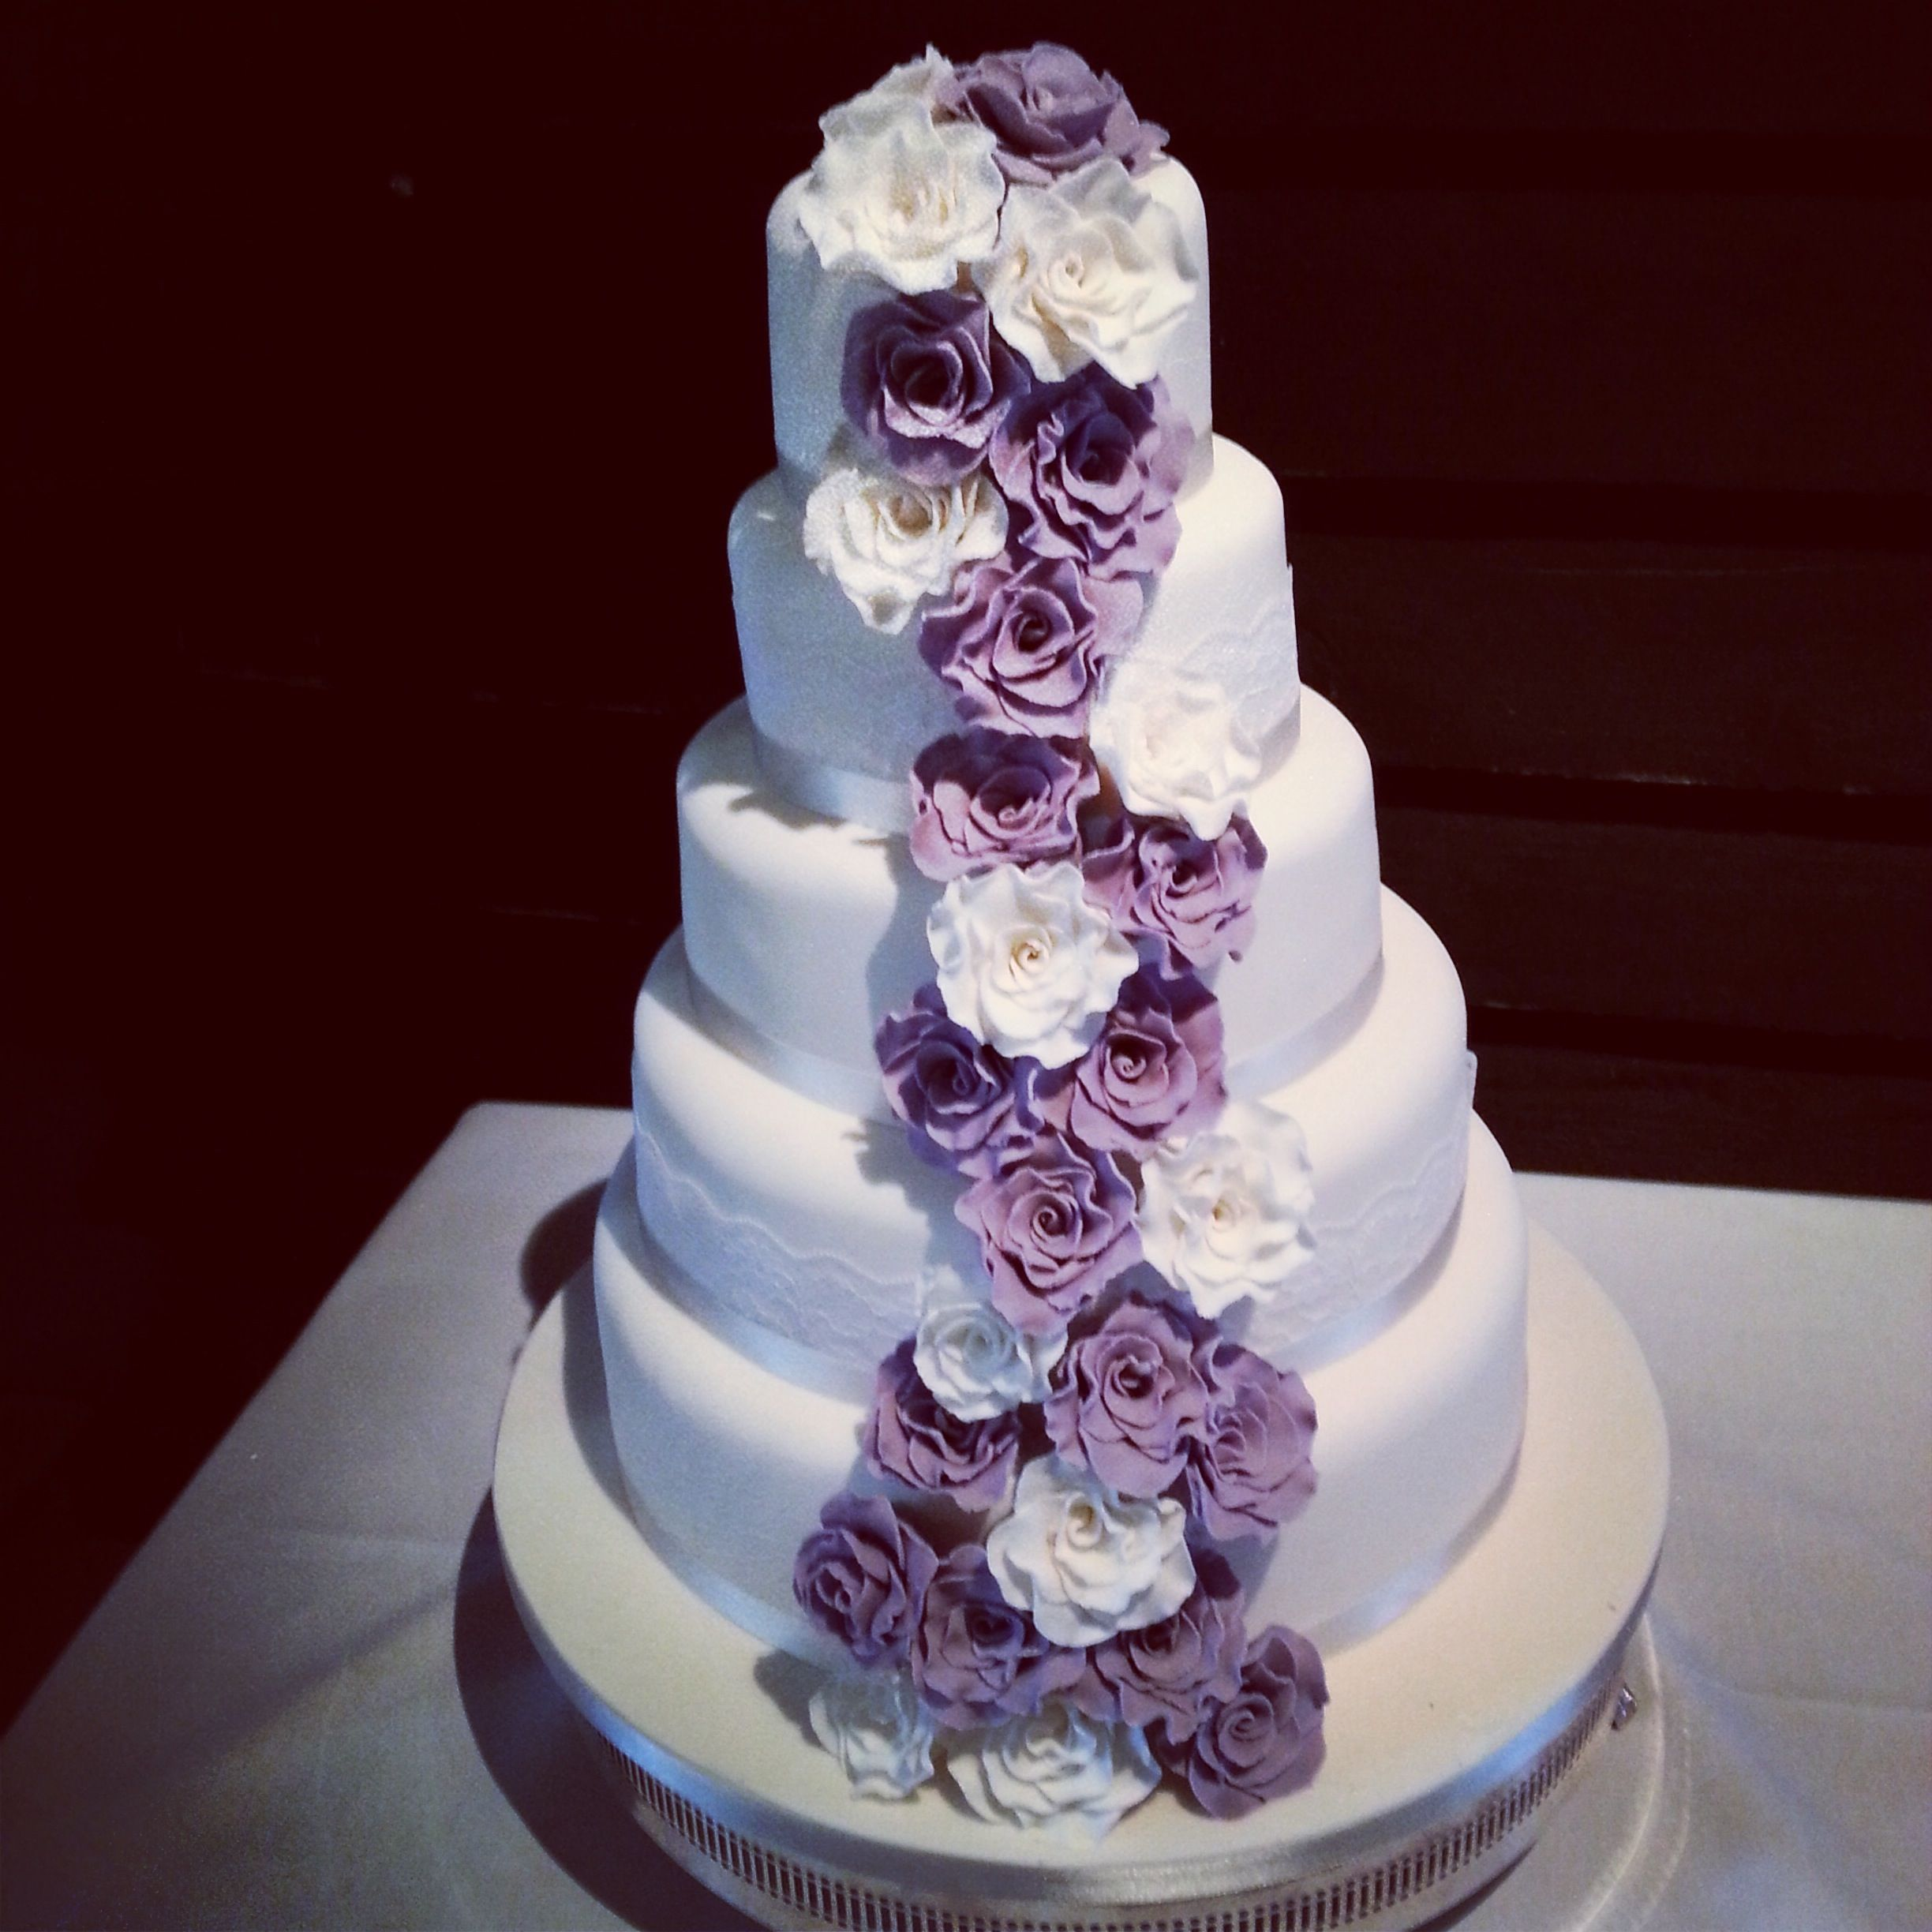 Classic 5 tier cake with a cascade of sugar flowers